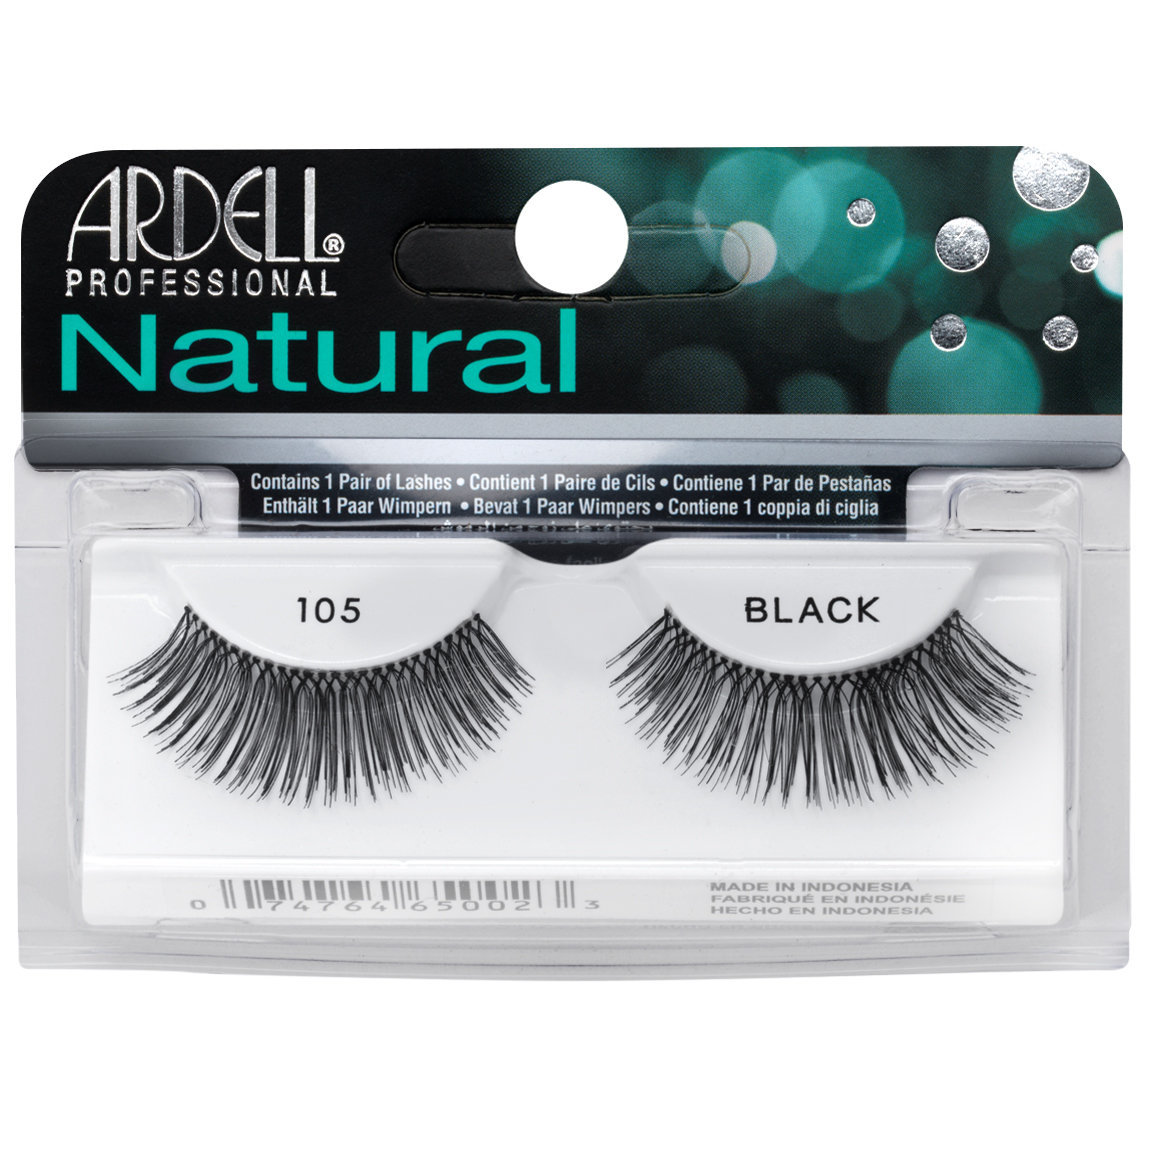 Ardell Natural Lashes 105 Black alternative view 1.